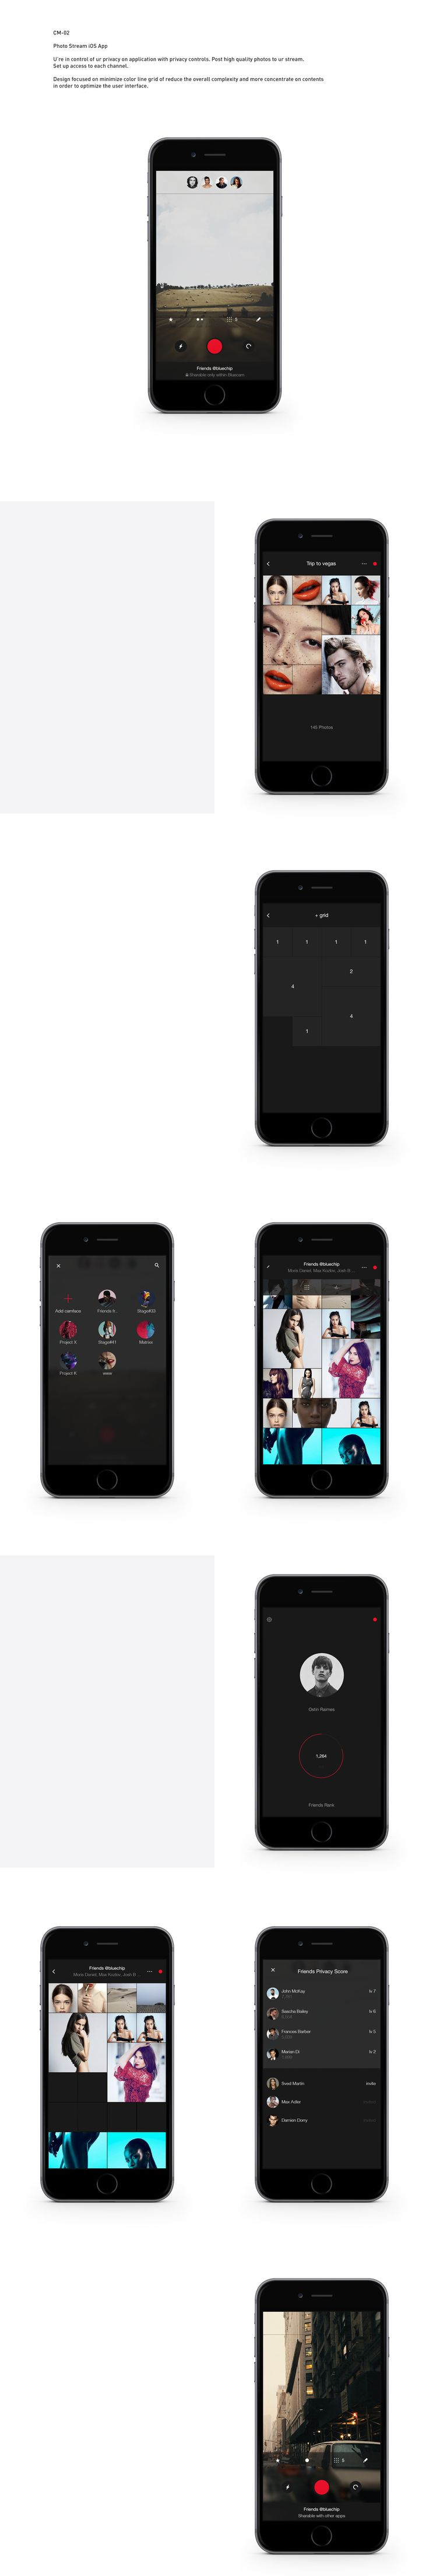 CM-02 Photo Stream iOS AppU're in control of ur privacy on application with privacy controls. Post high quality photos to ur stream. Set up access to each channel. Design focused on minimize color line grid of reduce the overall complexity and mo…